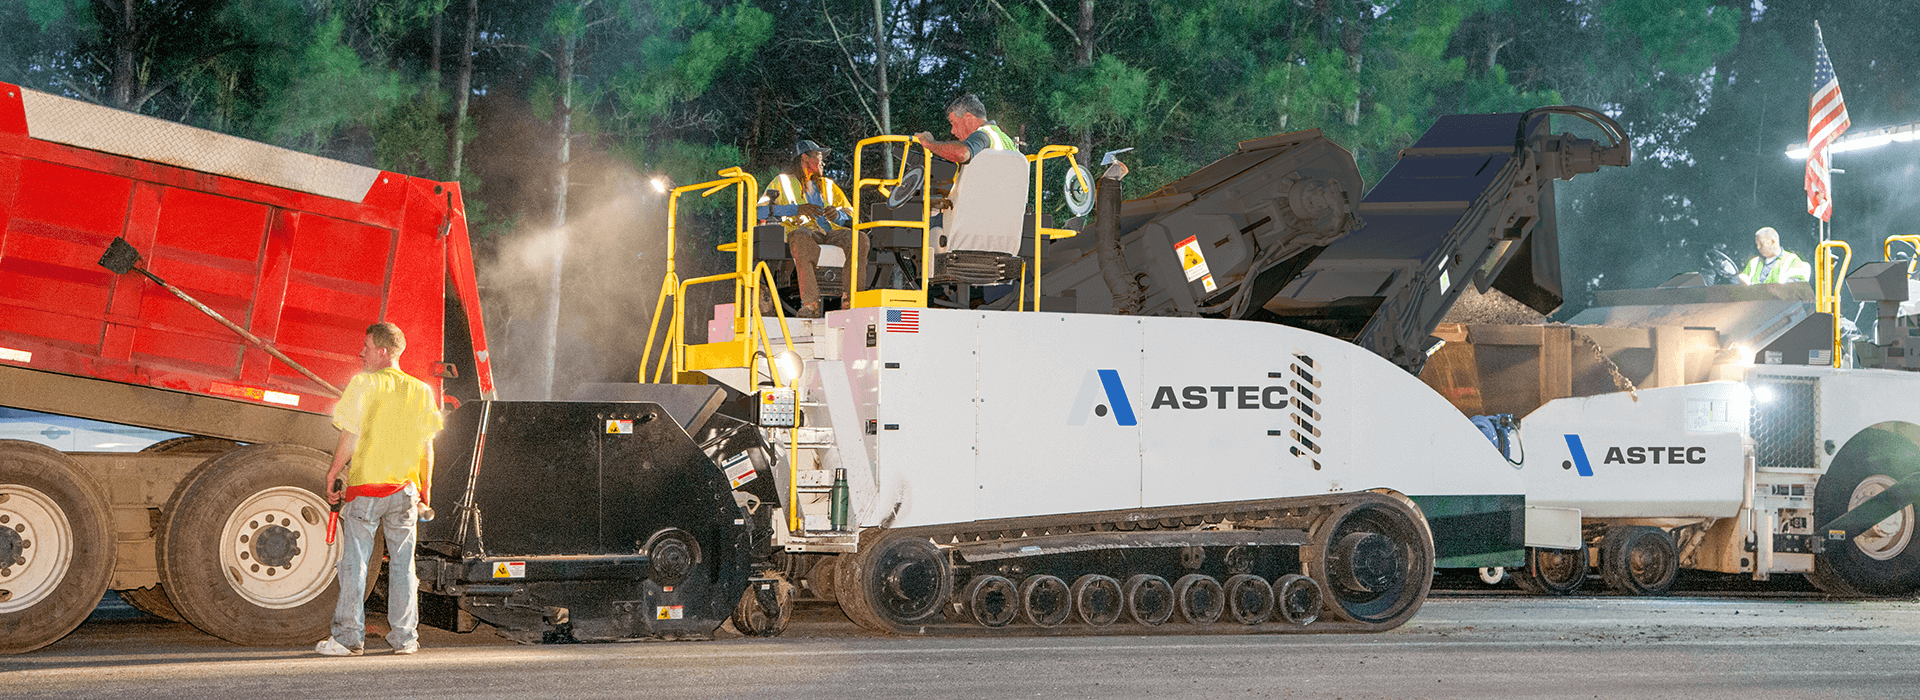 A Roadtec MTV-1105 material transfer vehicle working with a roadtec RP-190 paver